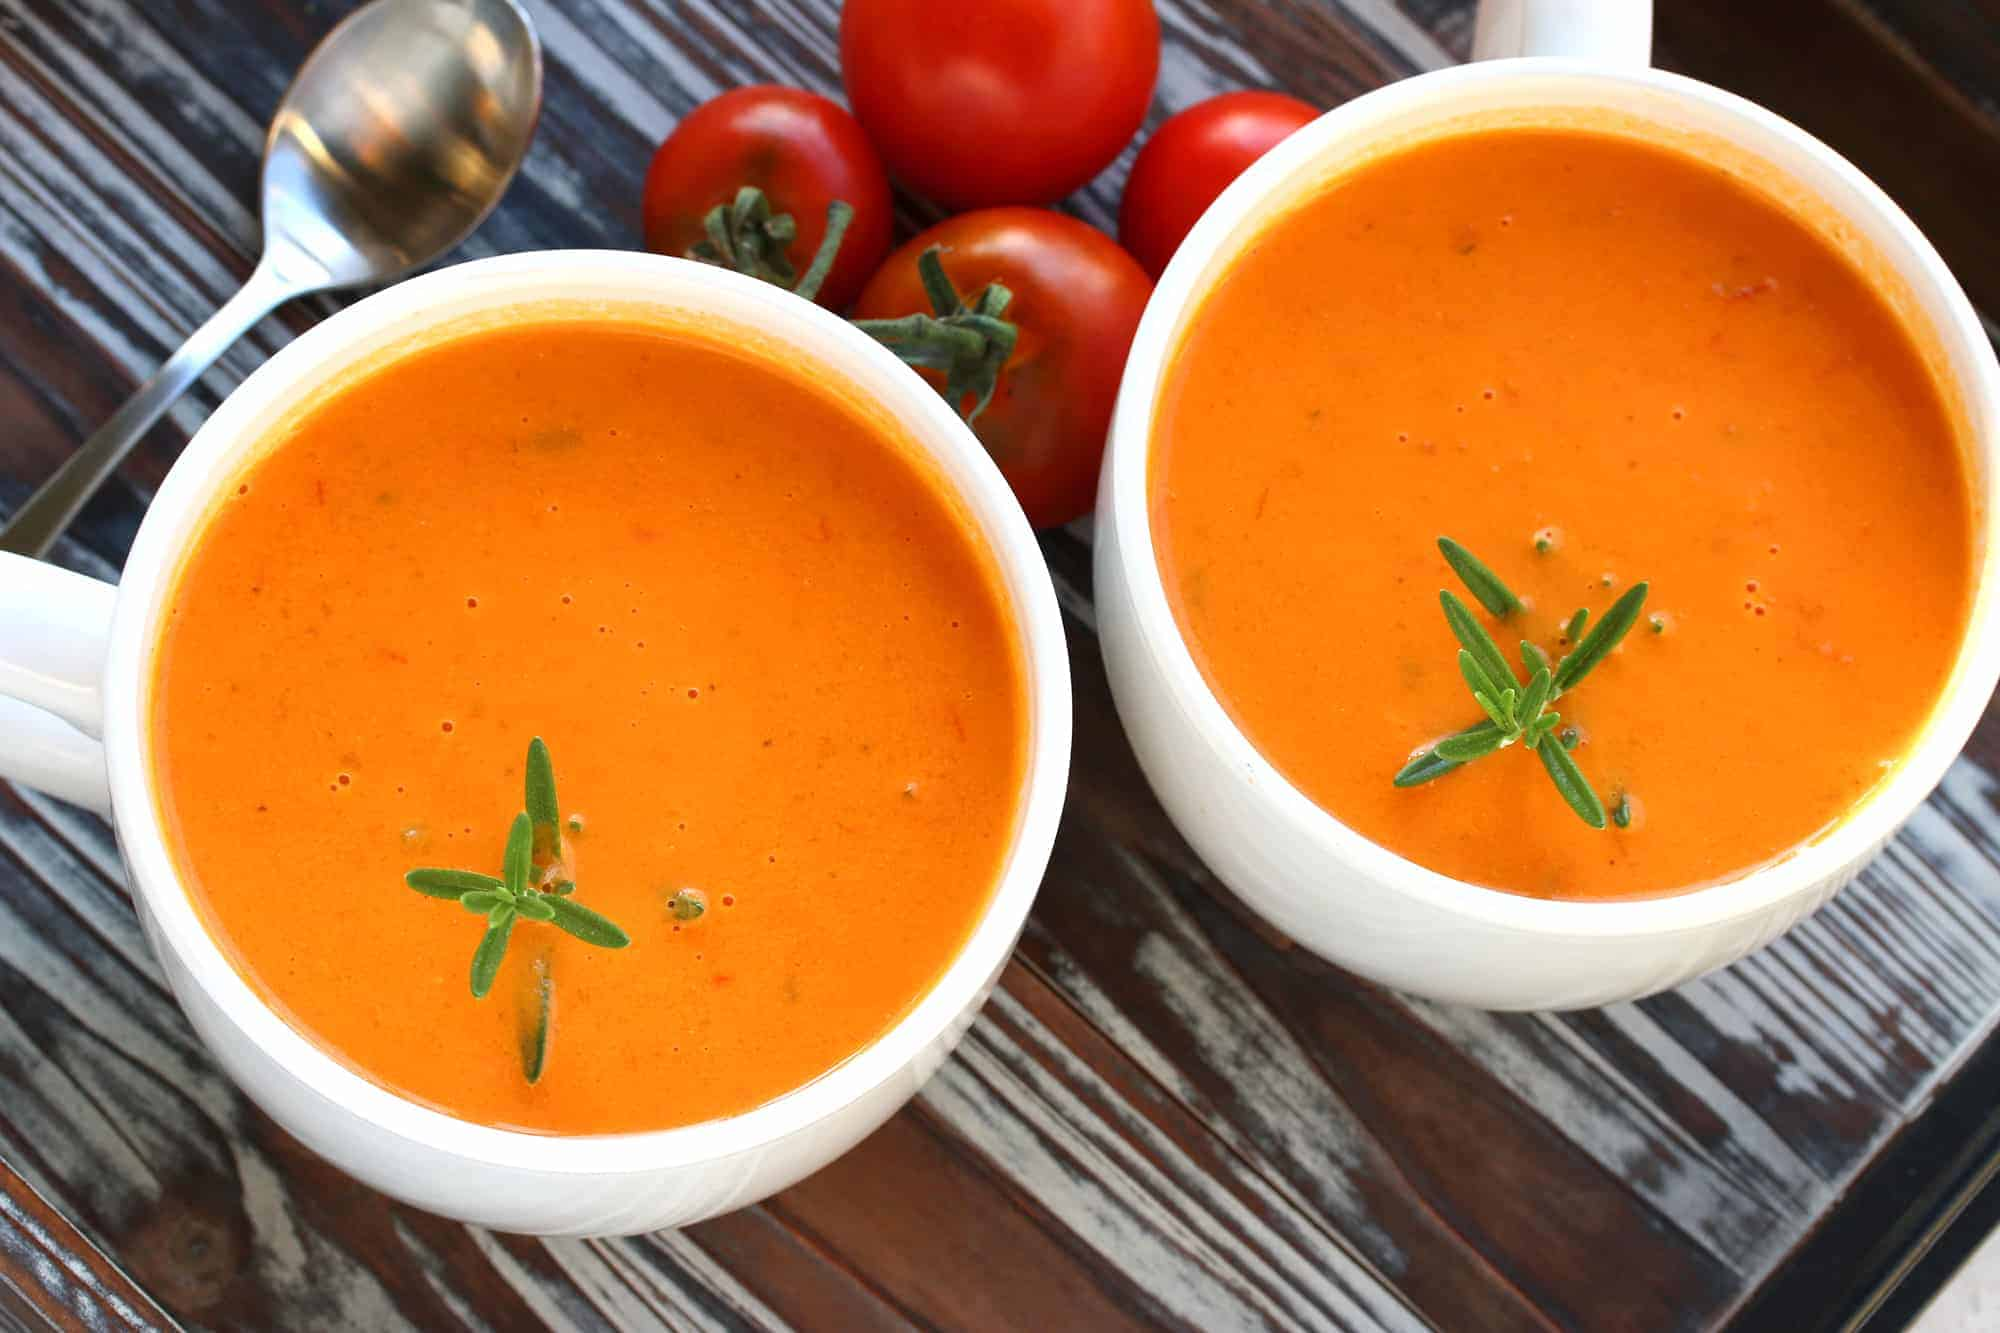 Creamy Tomato Soup The Daring Gourmet